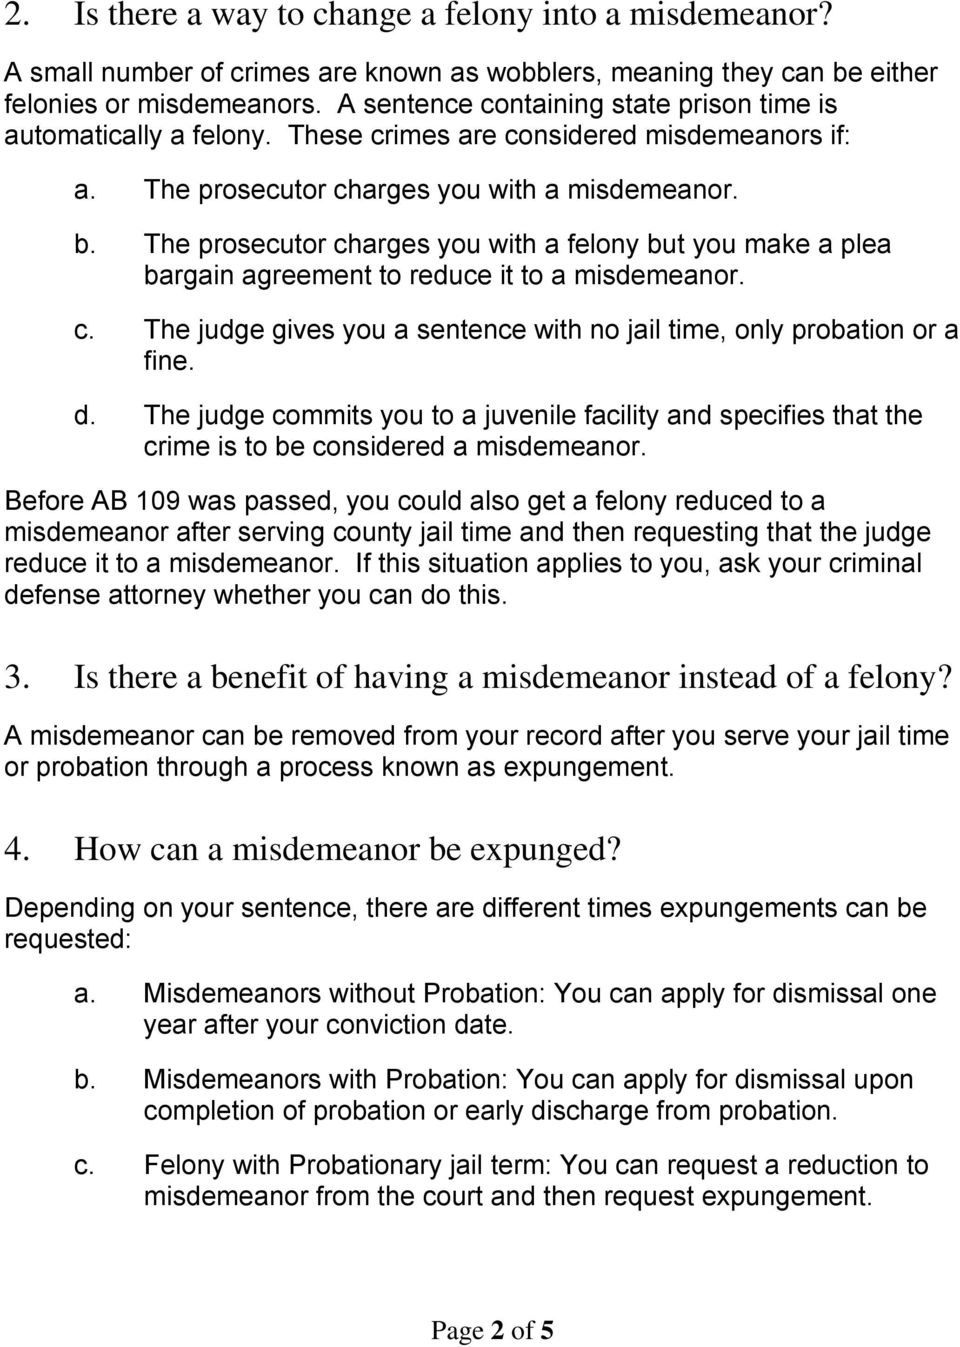 The prosecutor charges you with a felony but you make a plea bargain agreement to reduce it to a misdemeanor. c. The judge gives you a sentence with no jail time, only probation or a fine. d.